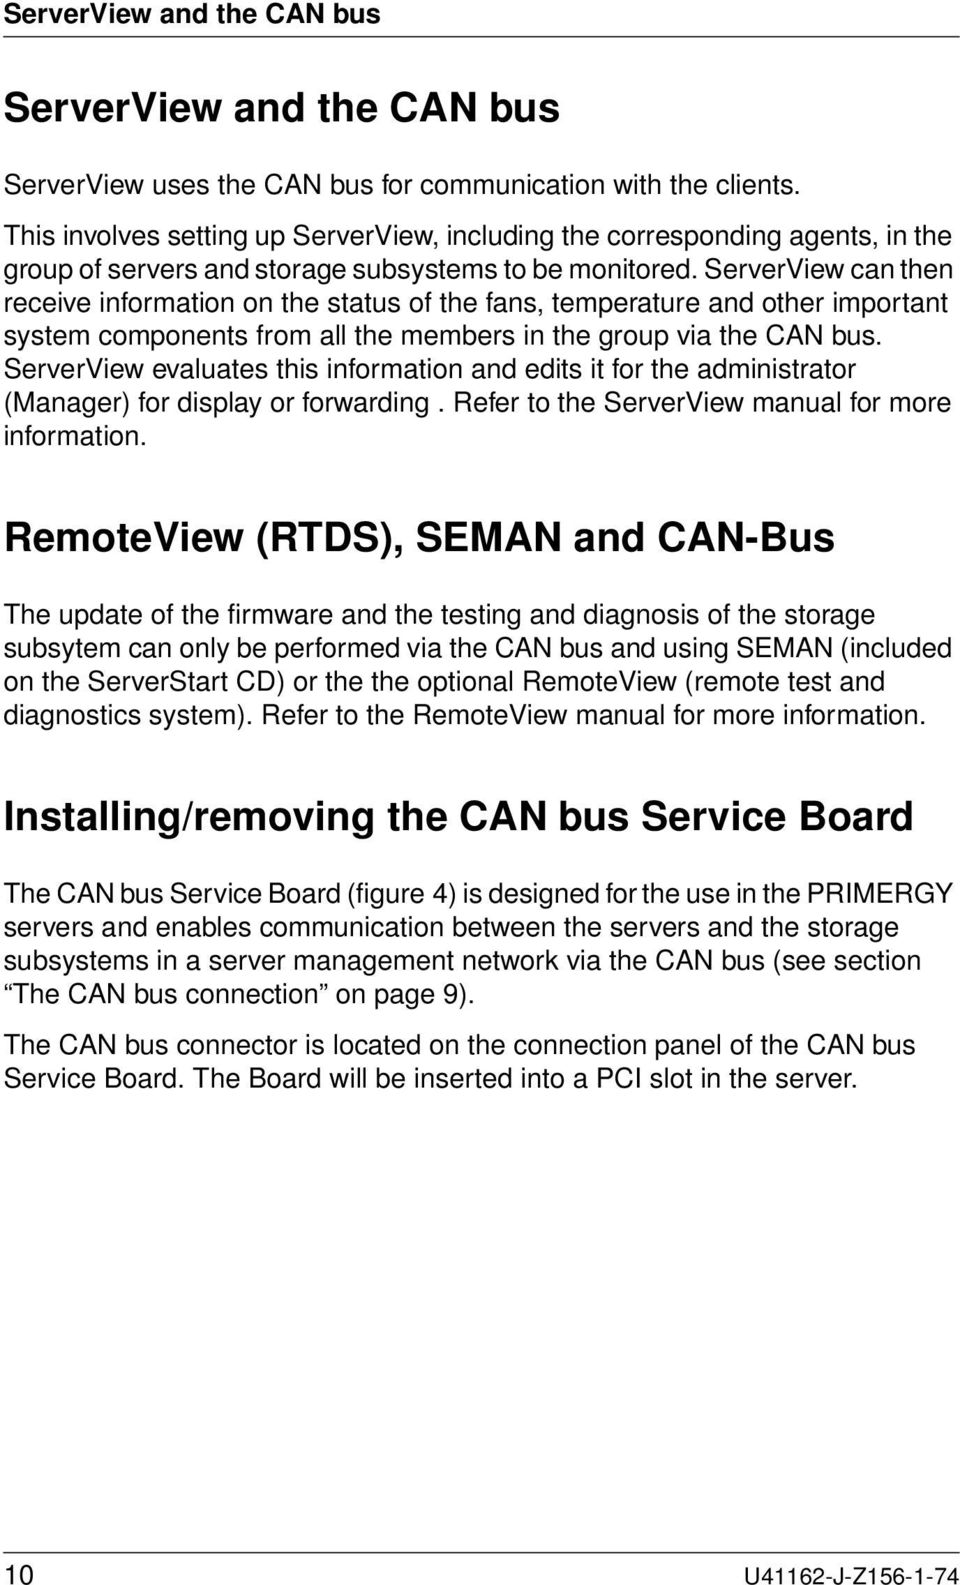 ServerView can then receive information on the status of the fans, temperature and other important system components from all the members in the group via the CAN bus.